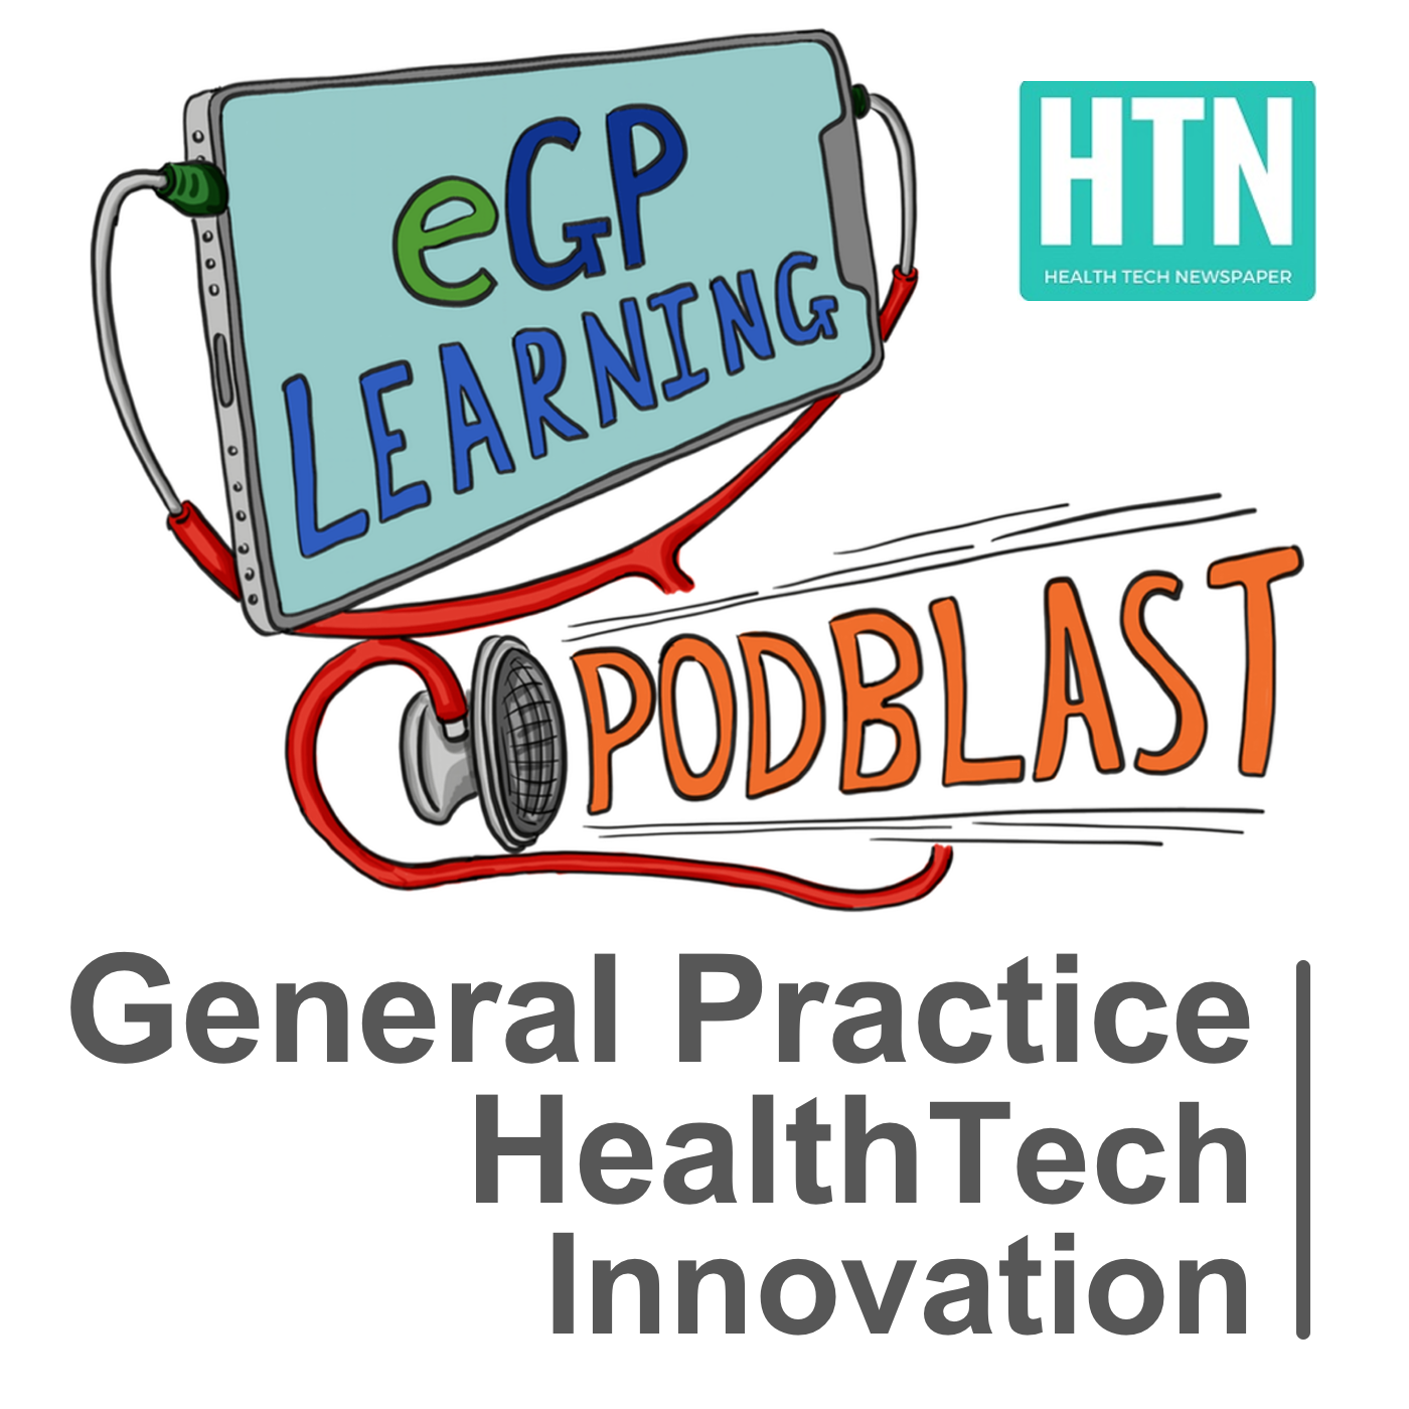 The NHS app - an eGPlearning Podblast perspective